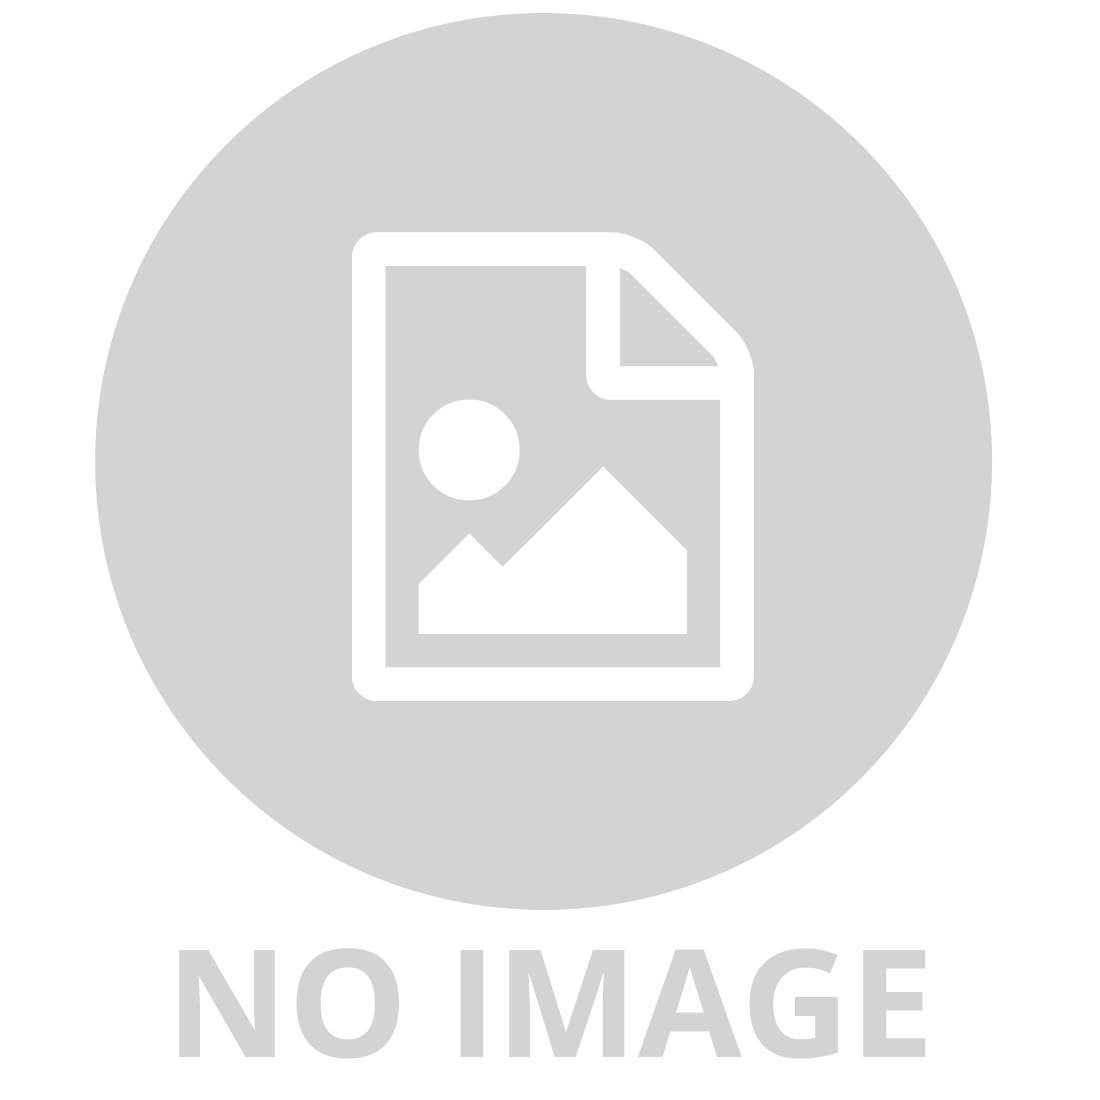 TAMIYA TS-1 RED BROWN SPRAY PAINT FOR PLASTICS